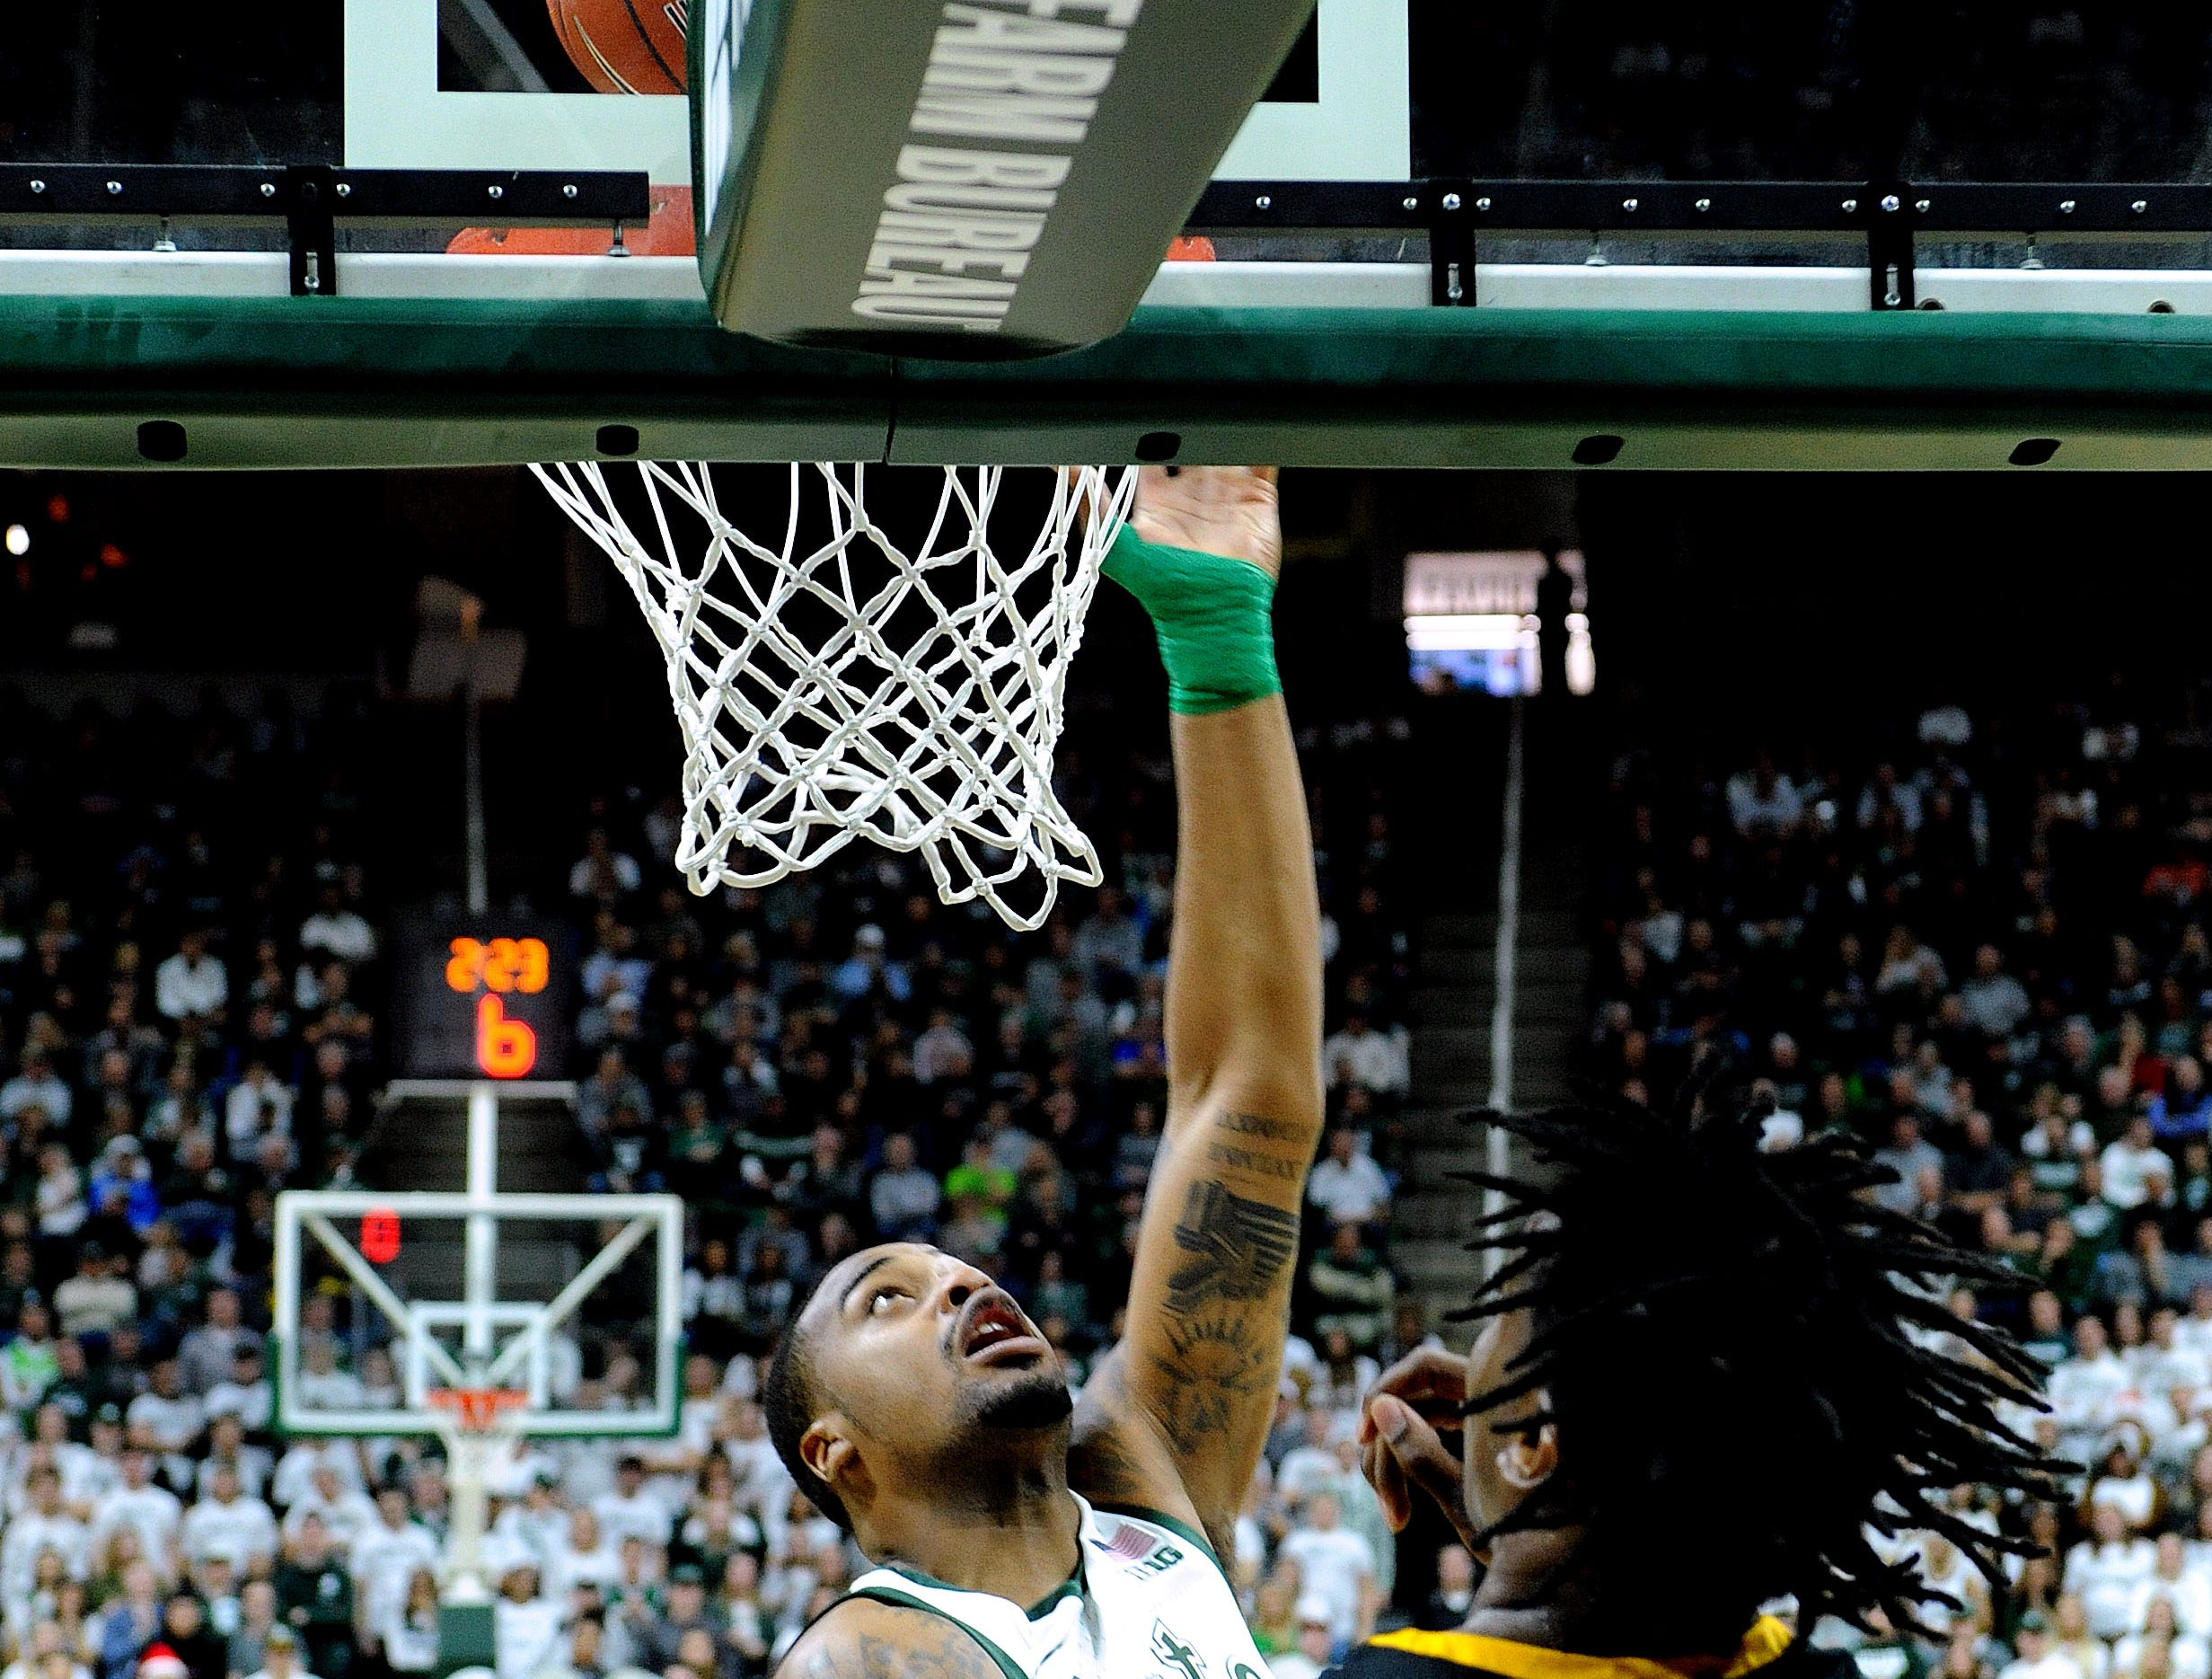 Nick Ward puts back a rebound for two points in the first half.